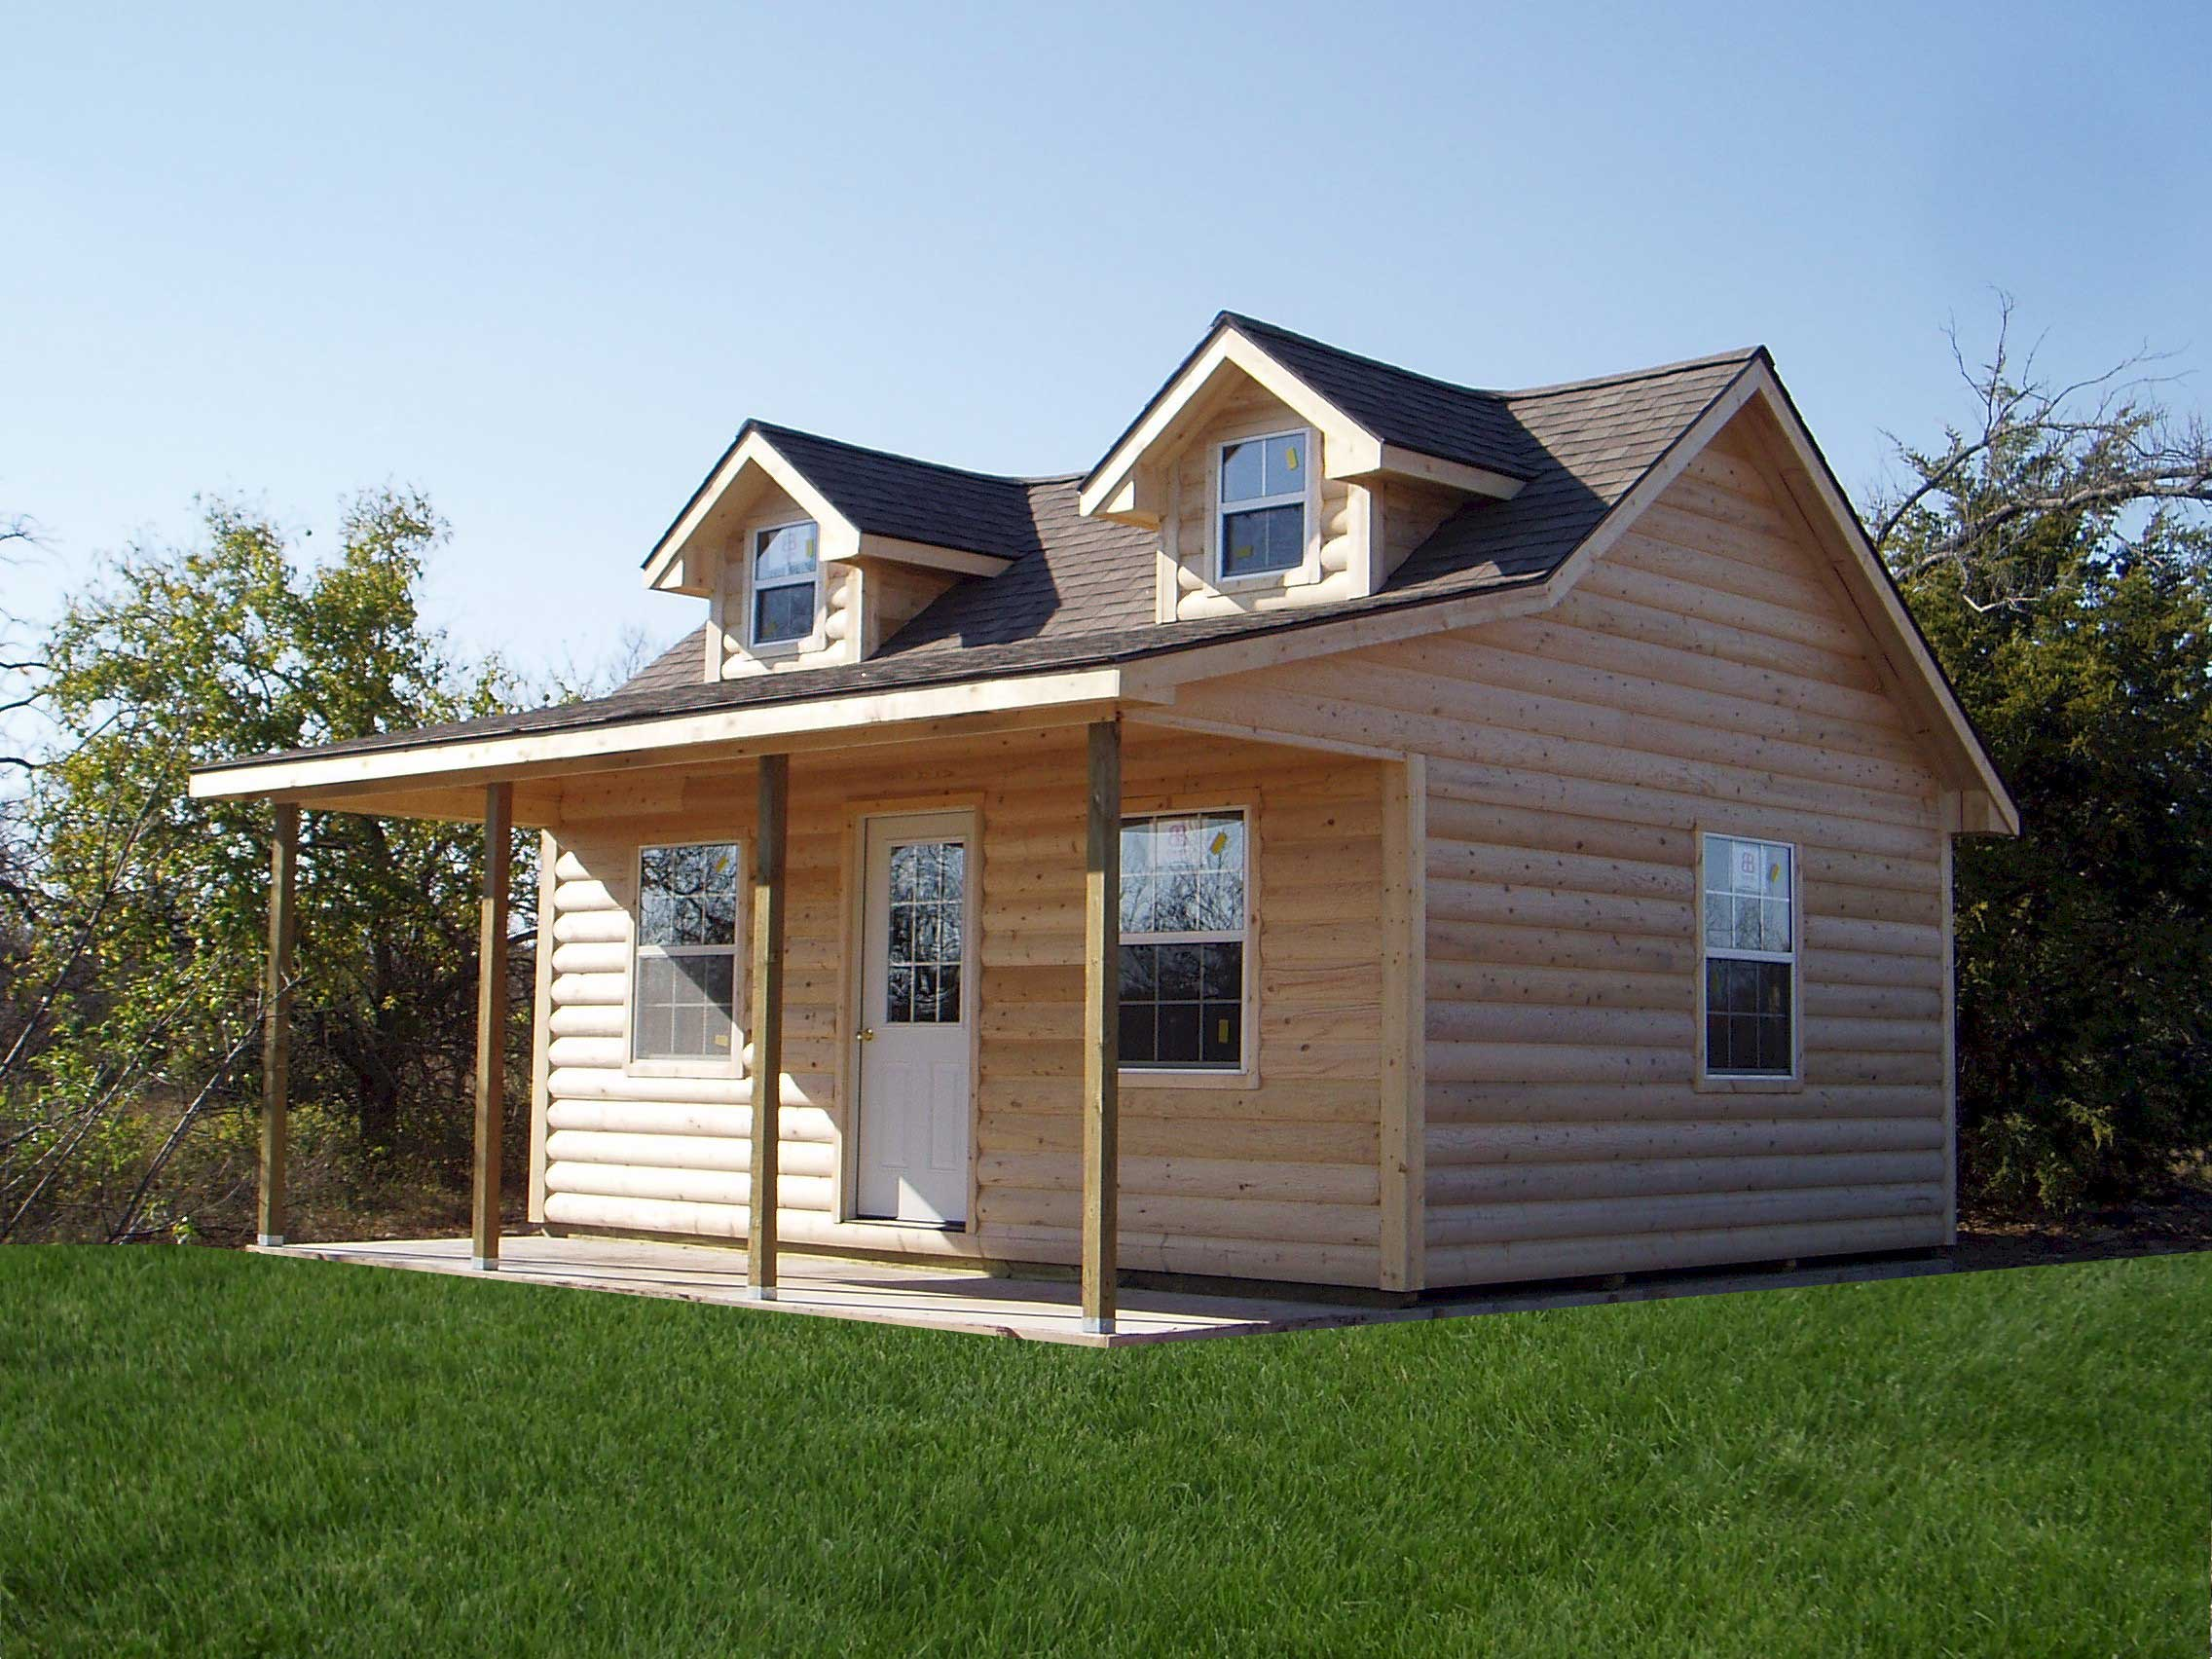 Sturdi Bilt Side Porch Cabins